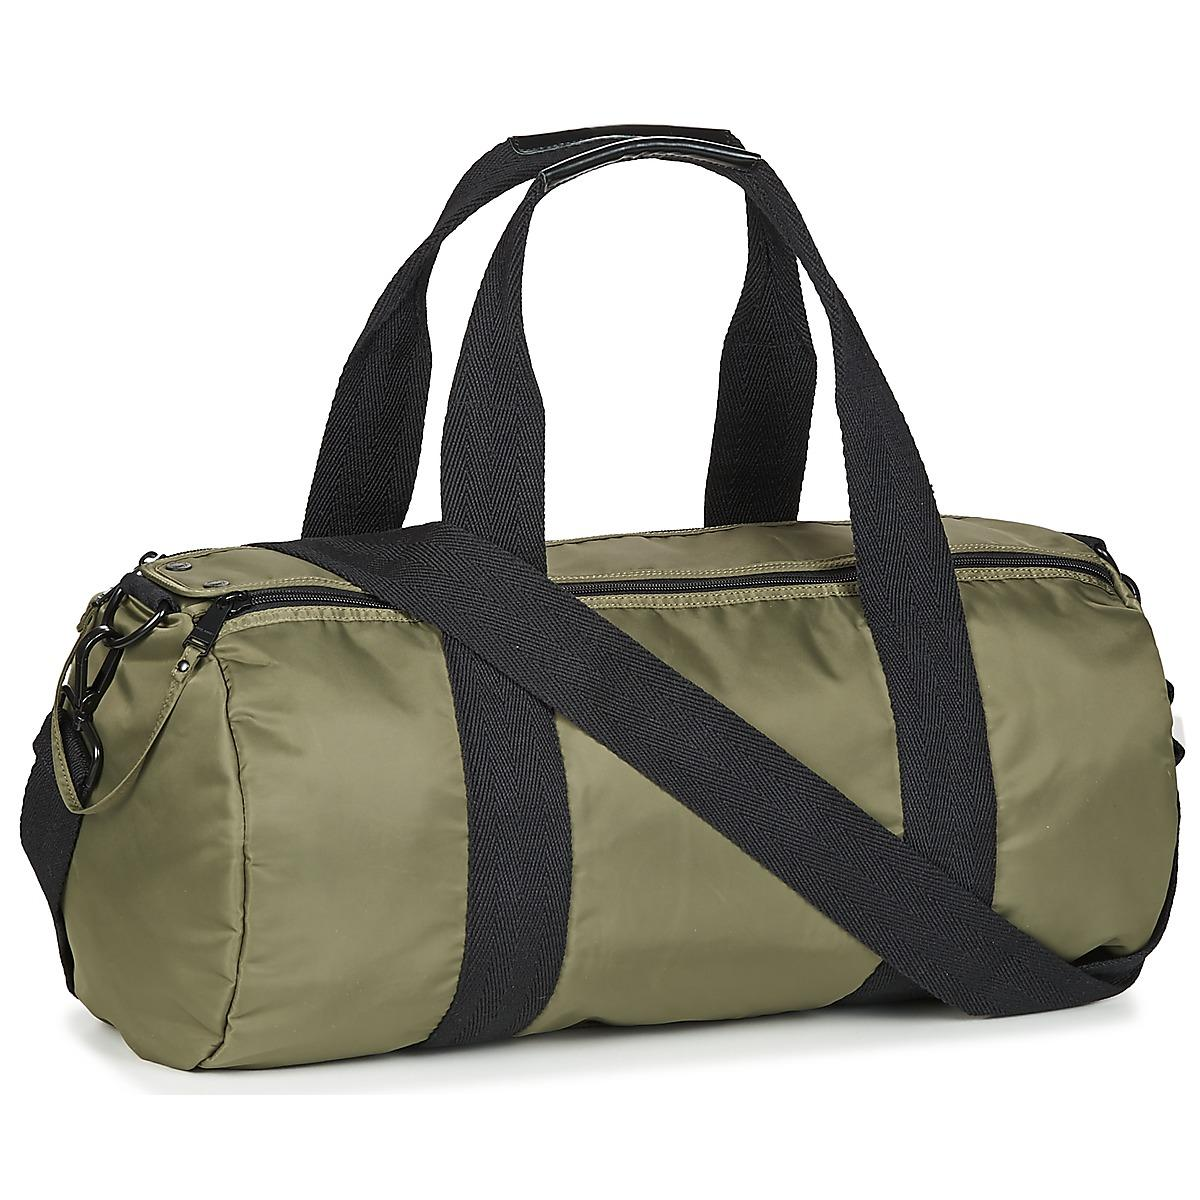 cda89f7f3593 Fred Perry Sports Nylon Barrel Men s Sports Bag In Green in Green ...